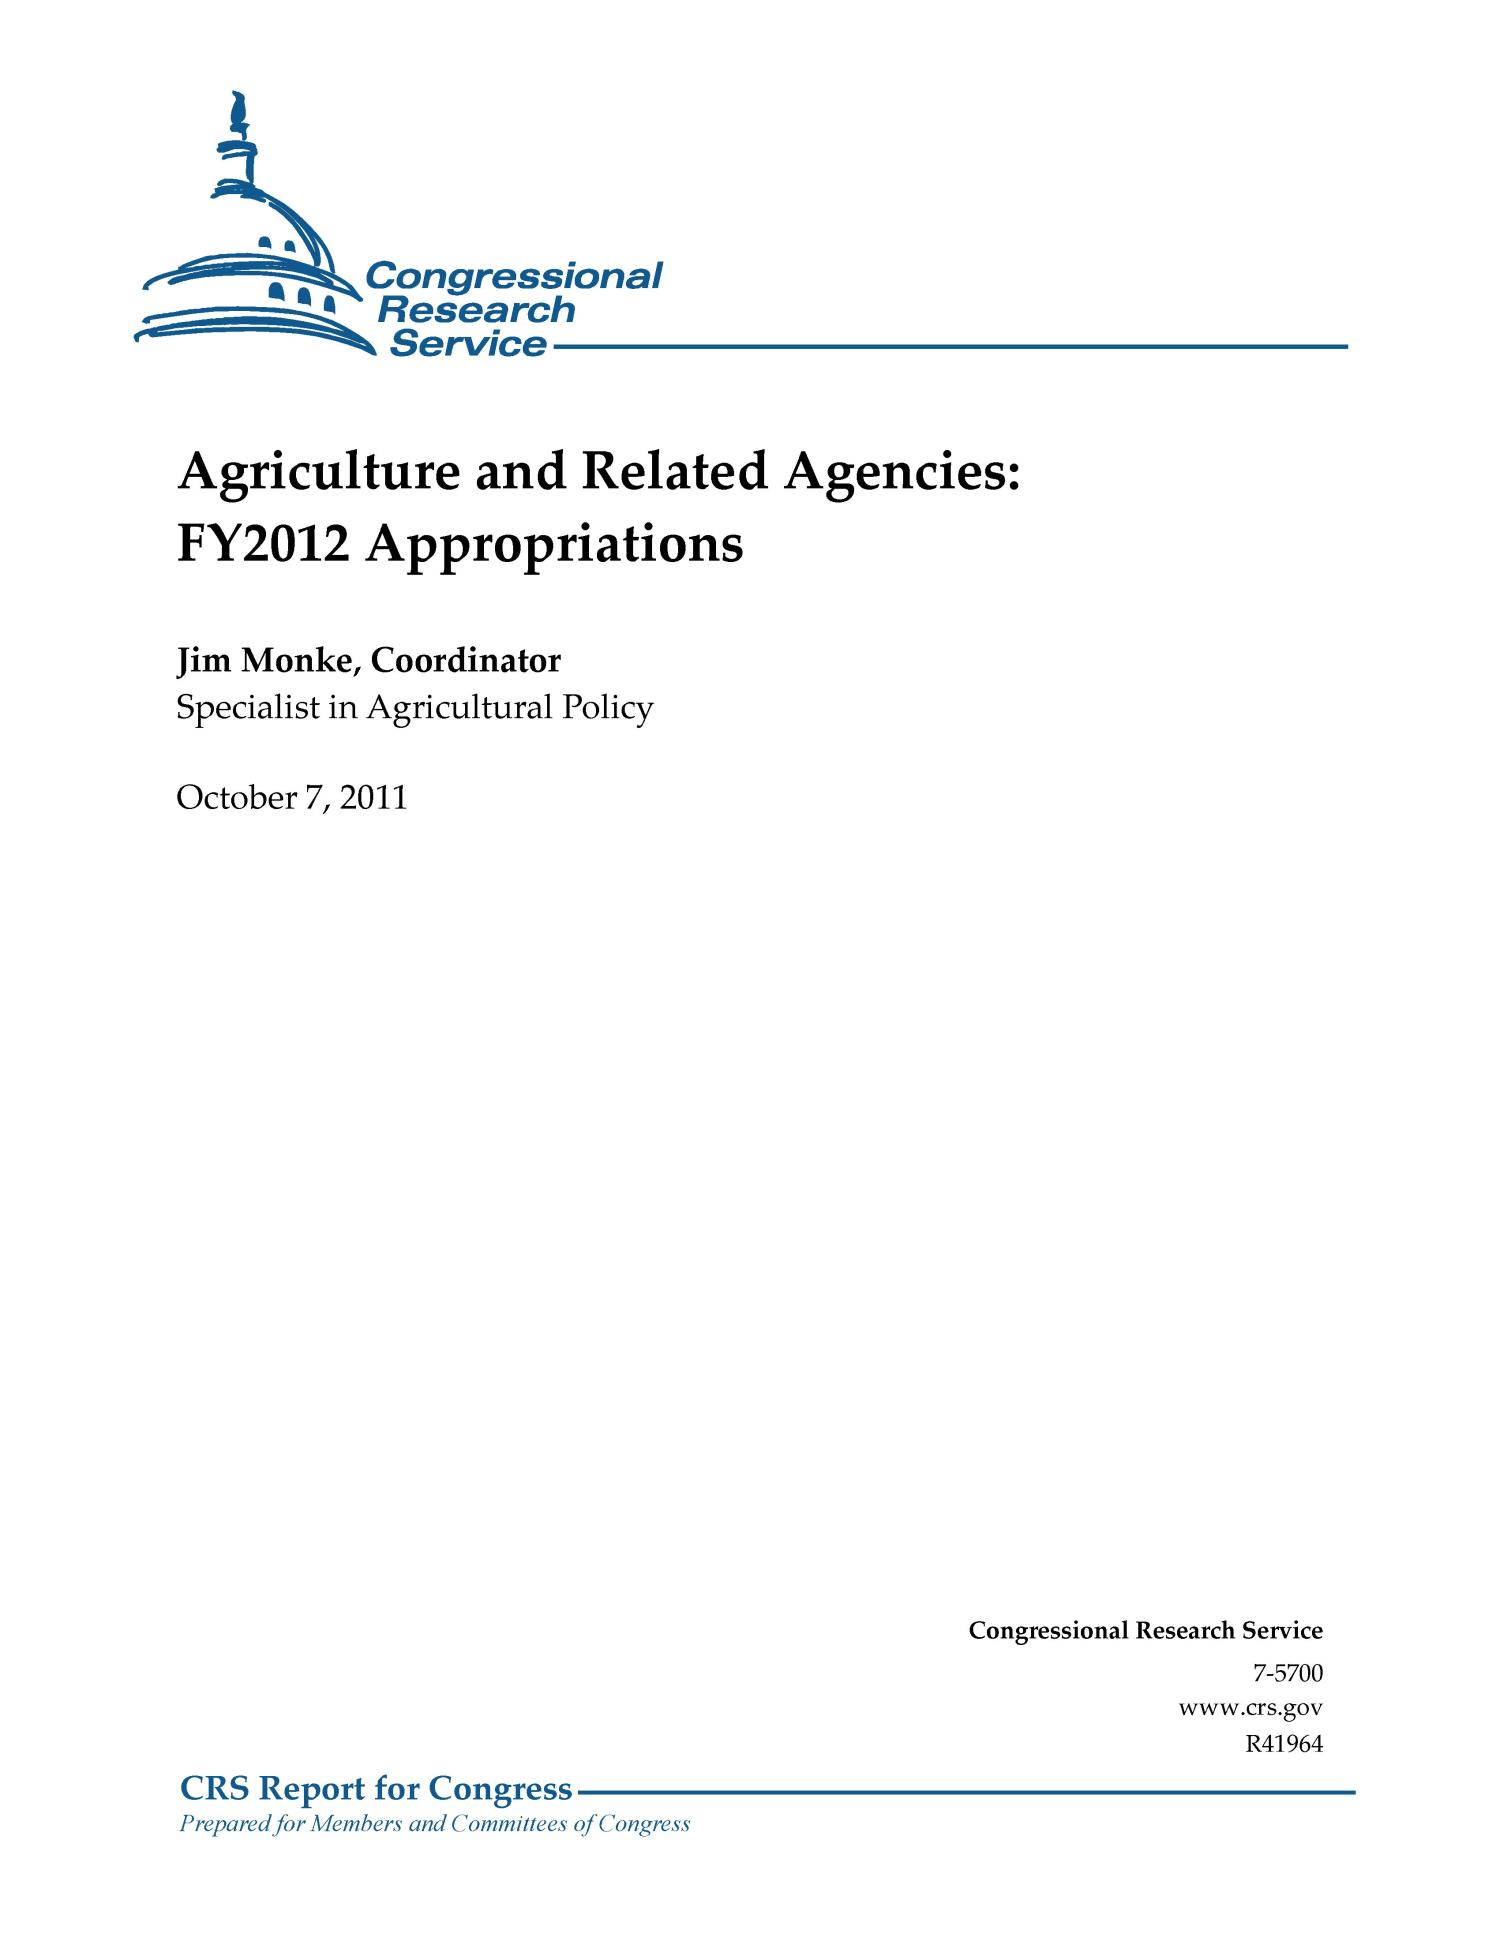 Agriculture and Related Agencies: FY2012 Appropriations                                                                                                      [Sequence #]: 1 of 79